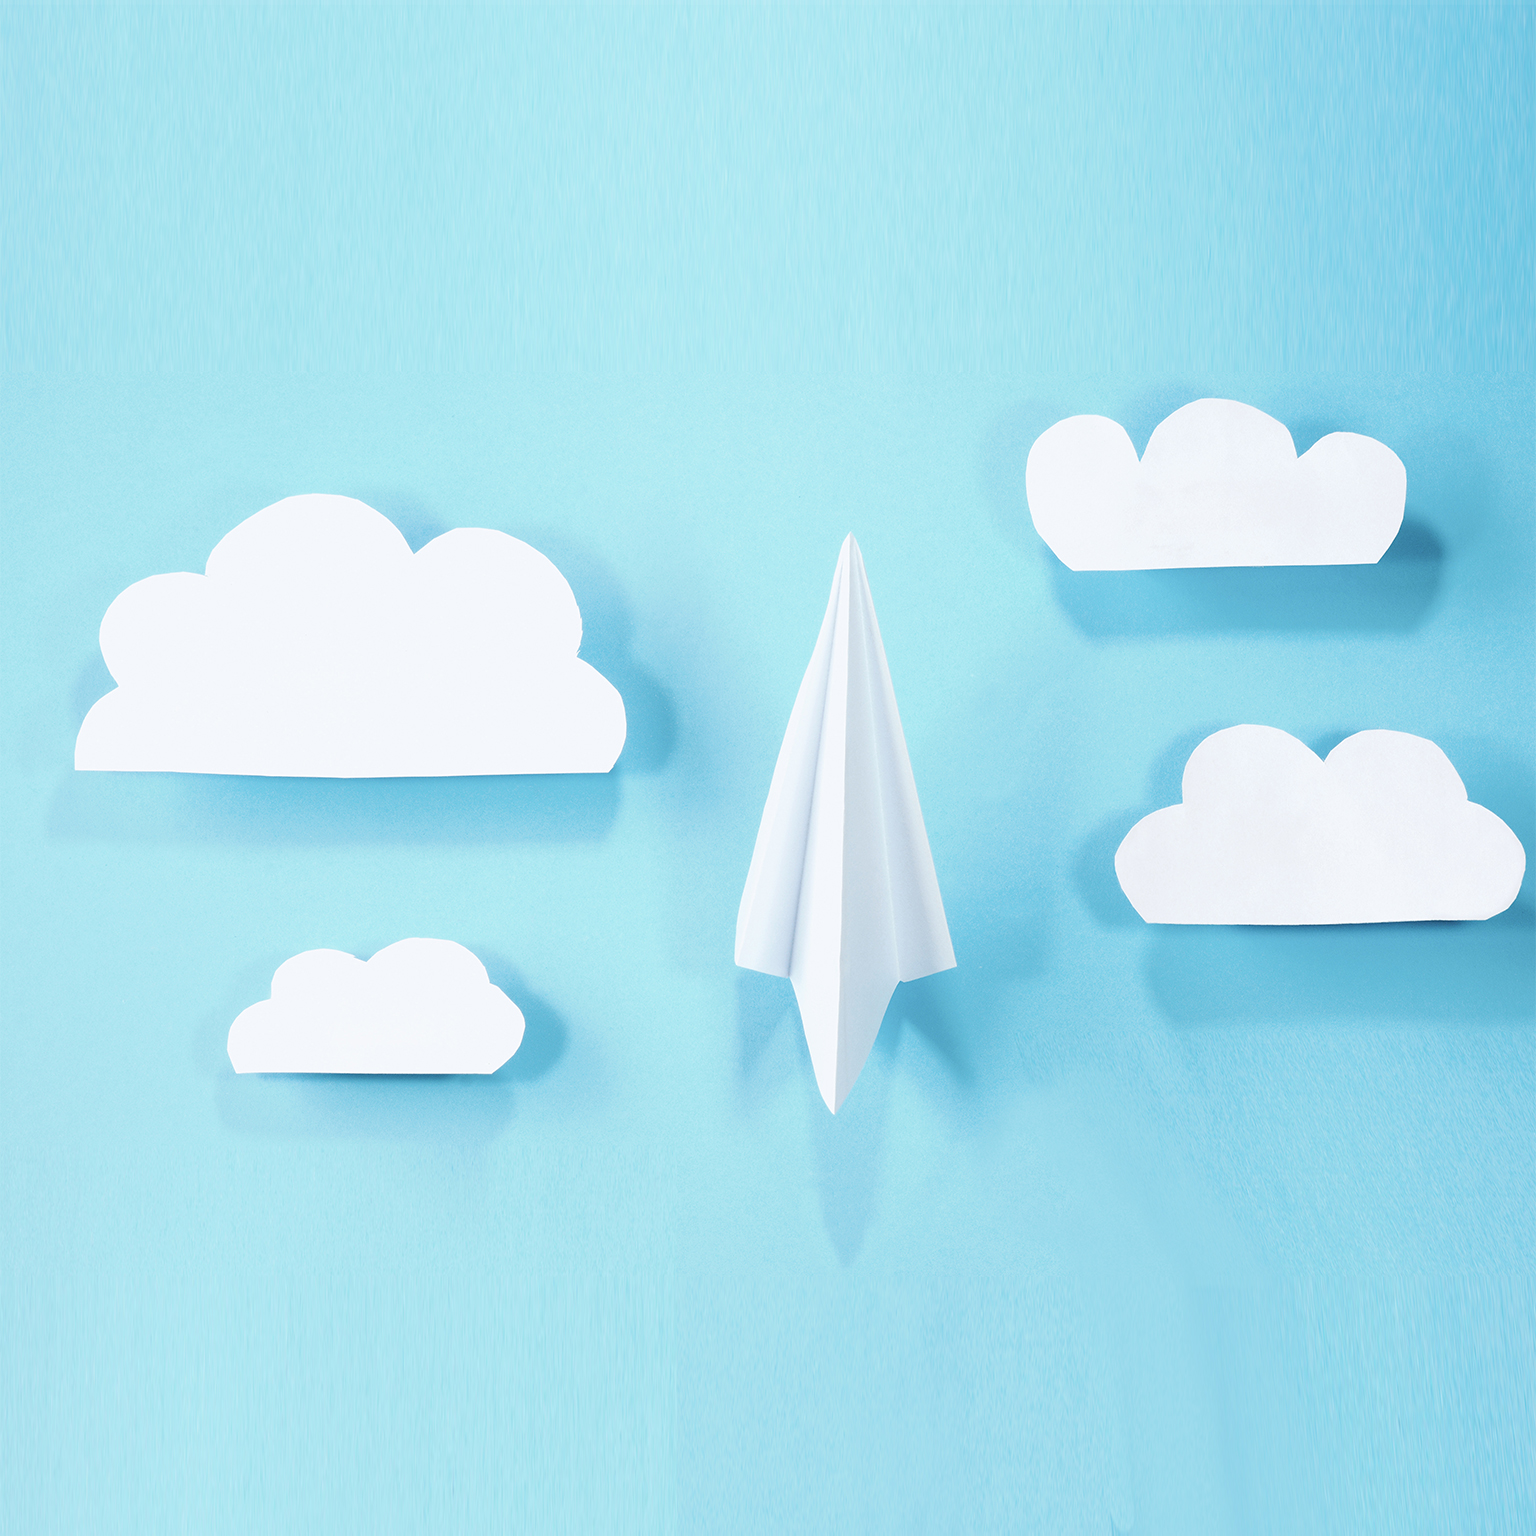 four-ways-boards-can-shape-the-cloud-agenda